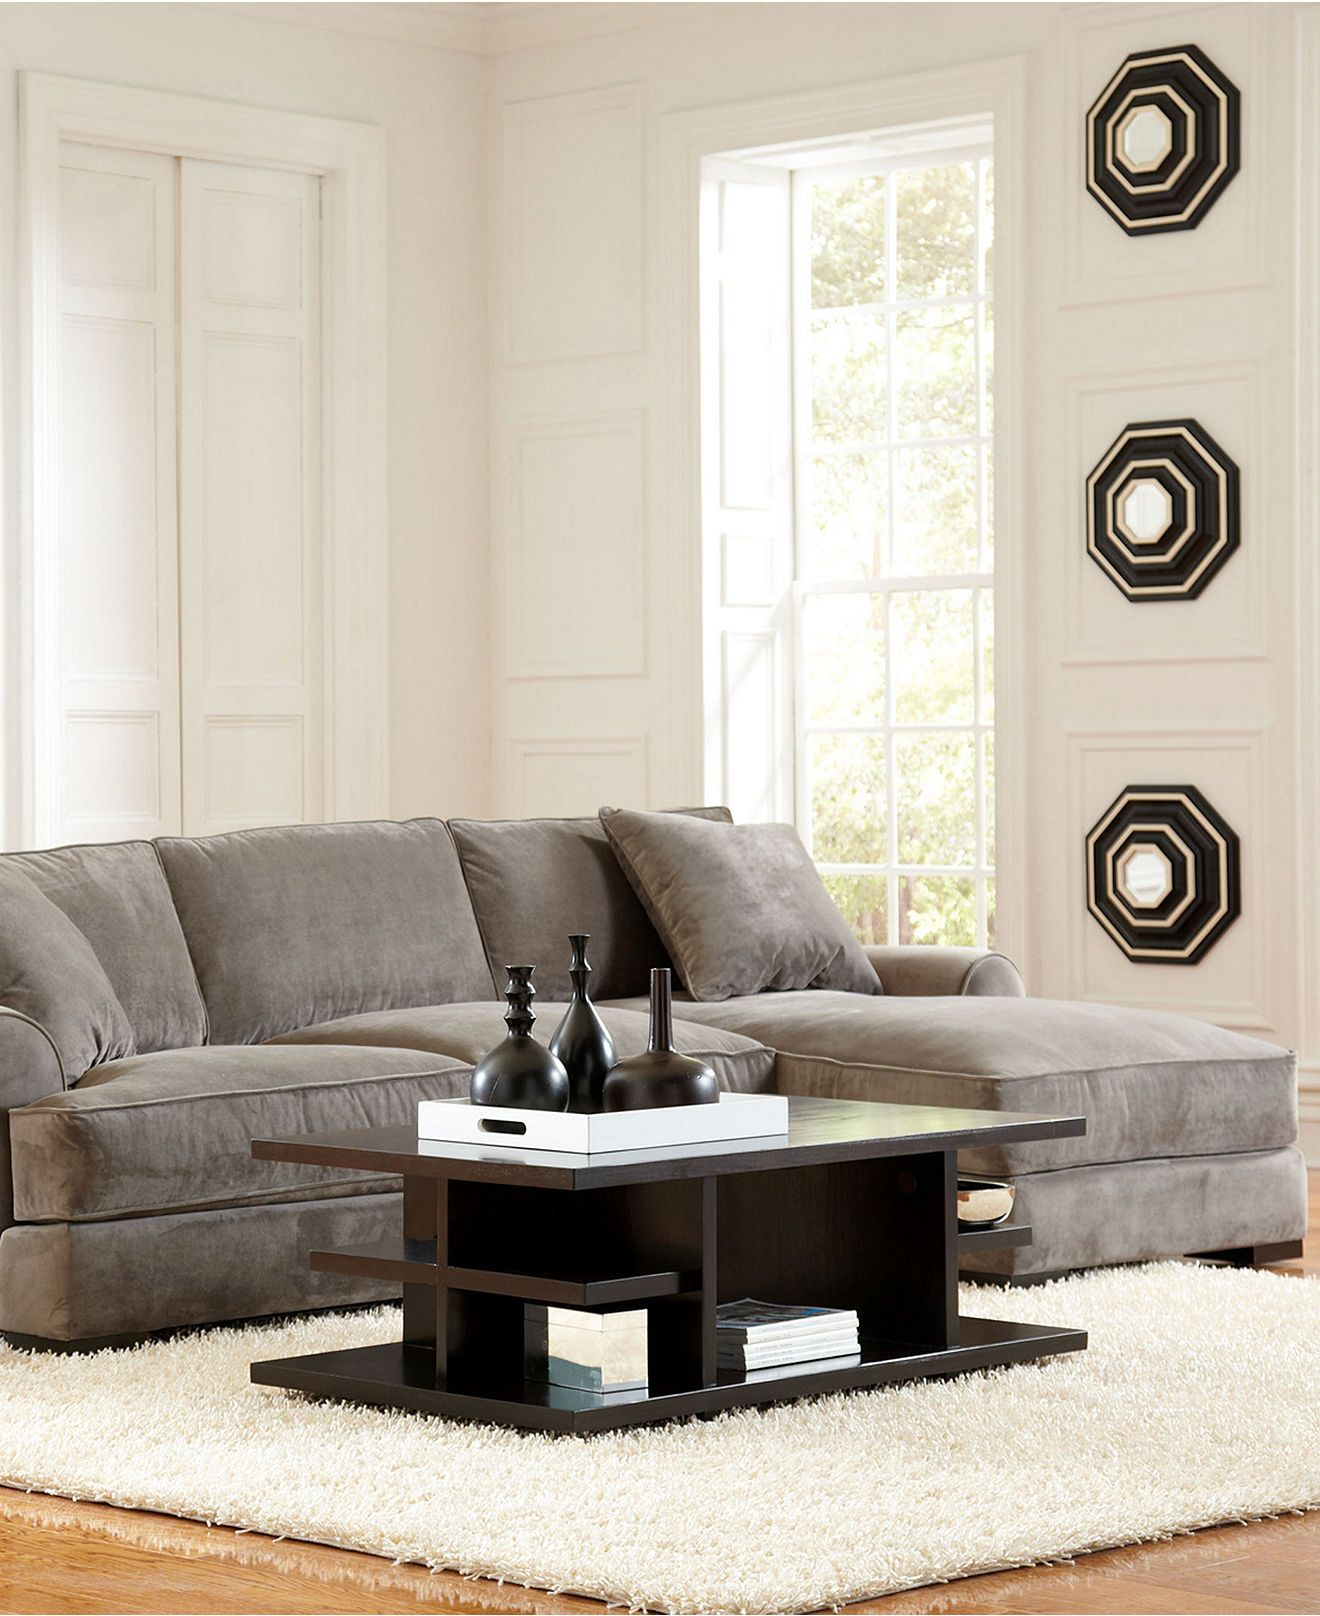 My Dream Couch!! Chaise Sofa From Macy's. Best Sofa Ever